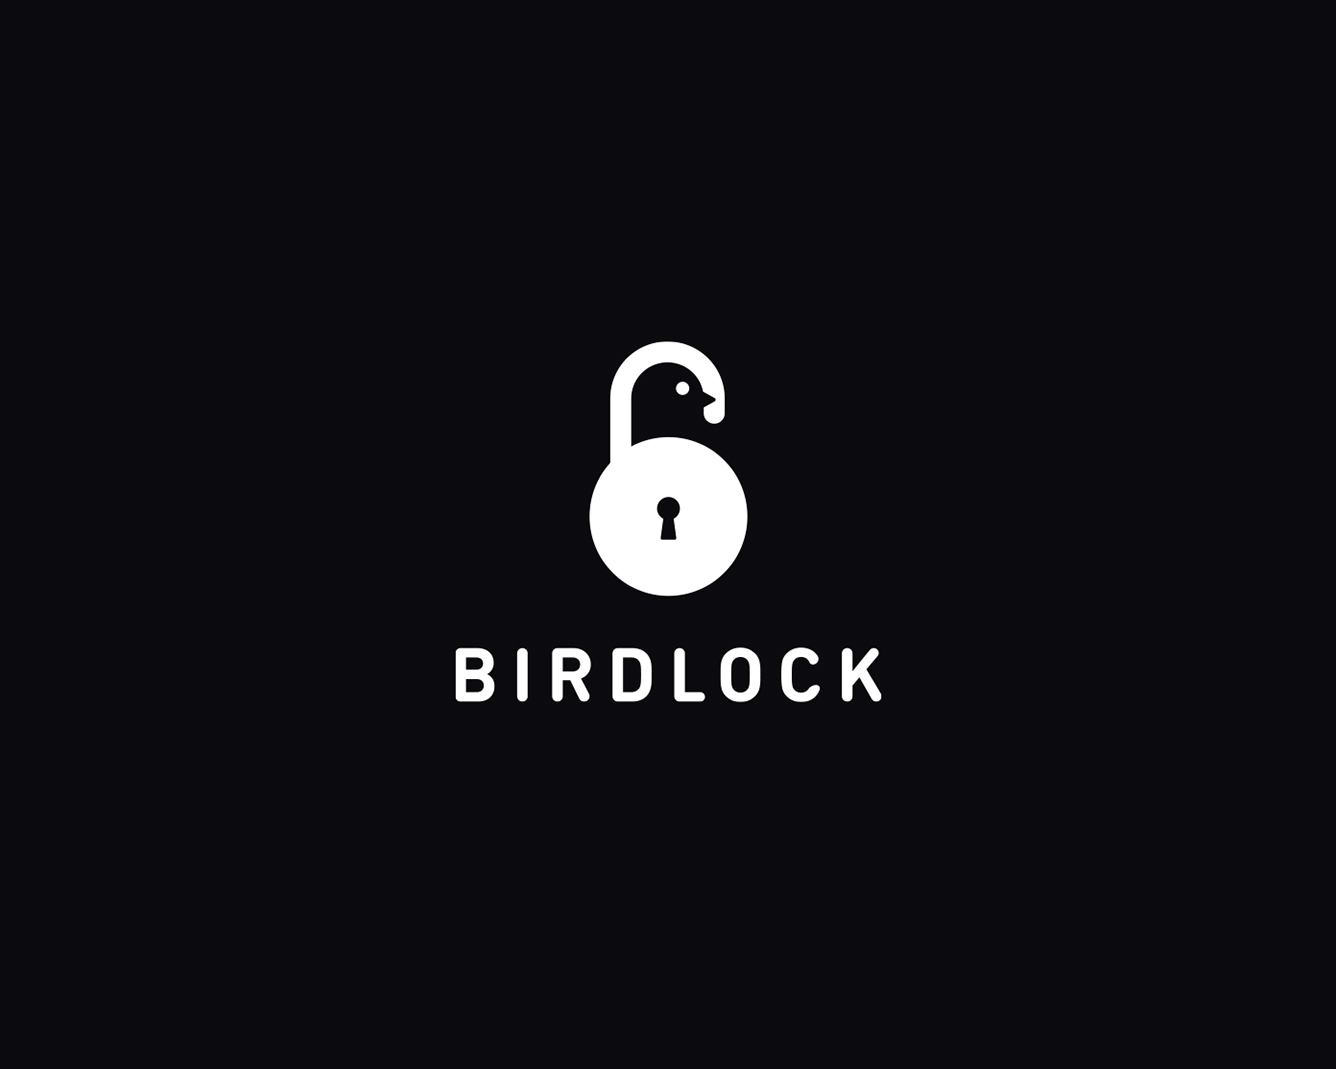 Designer creates logos with hidden meanings - 1